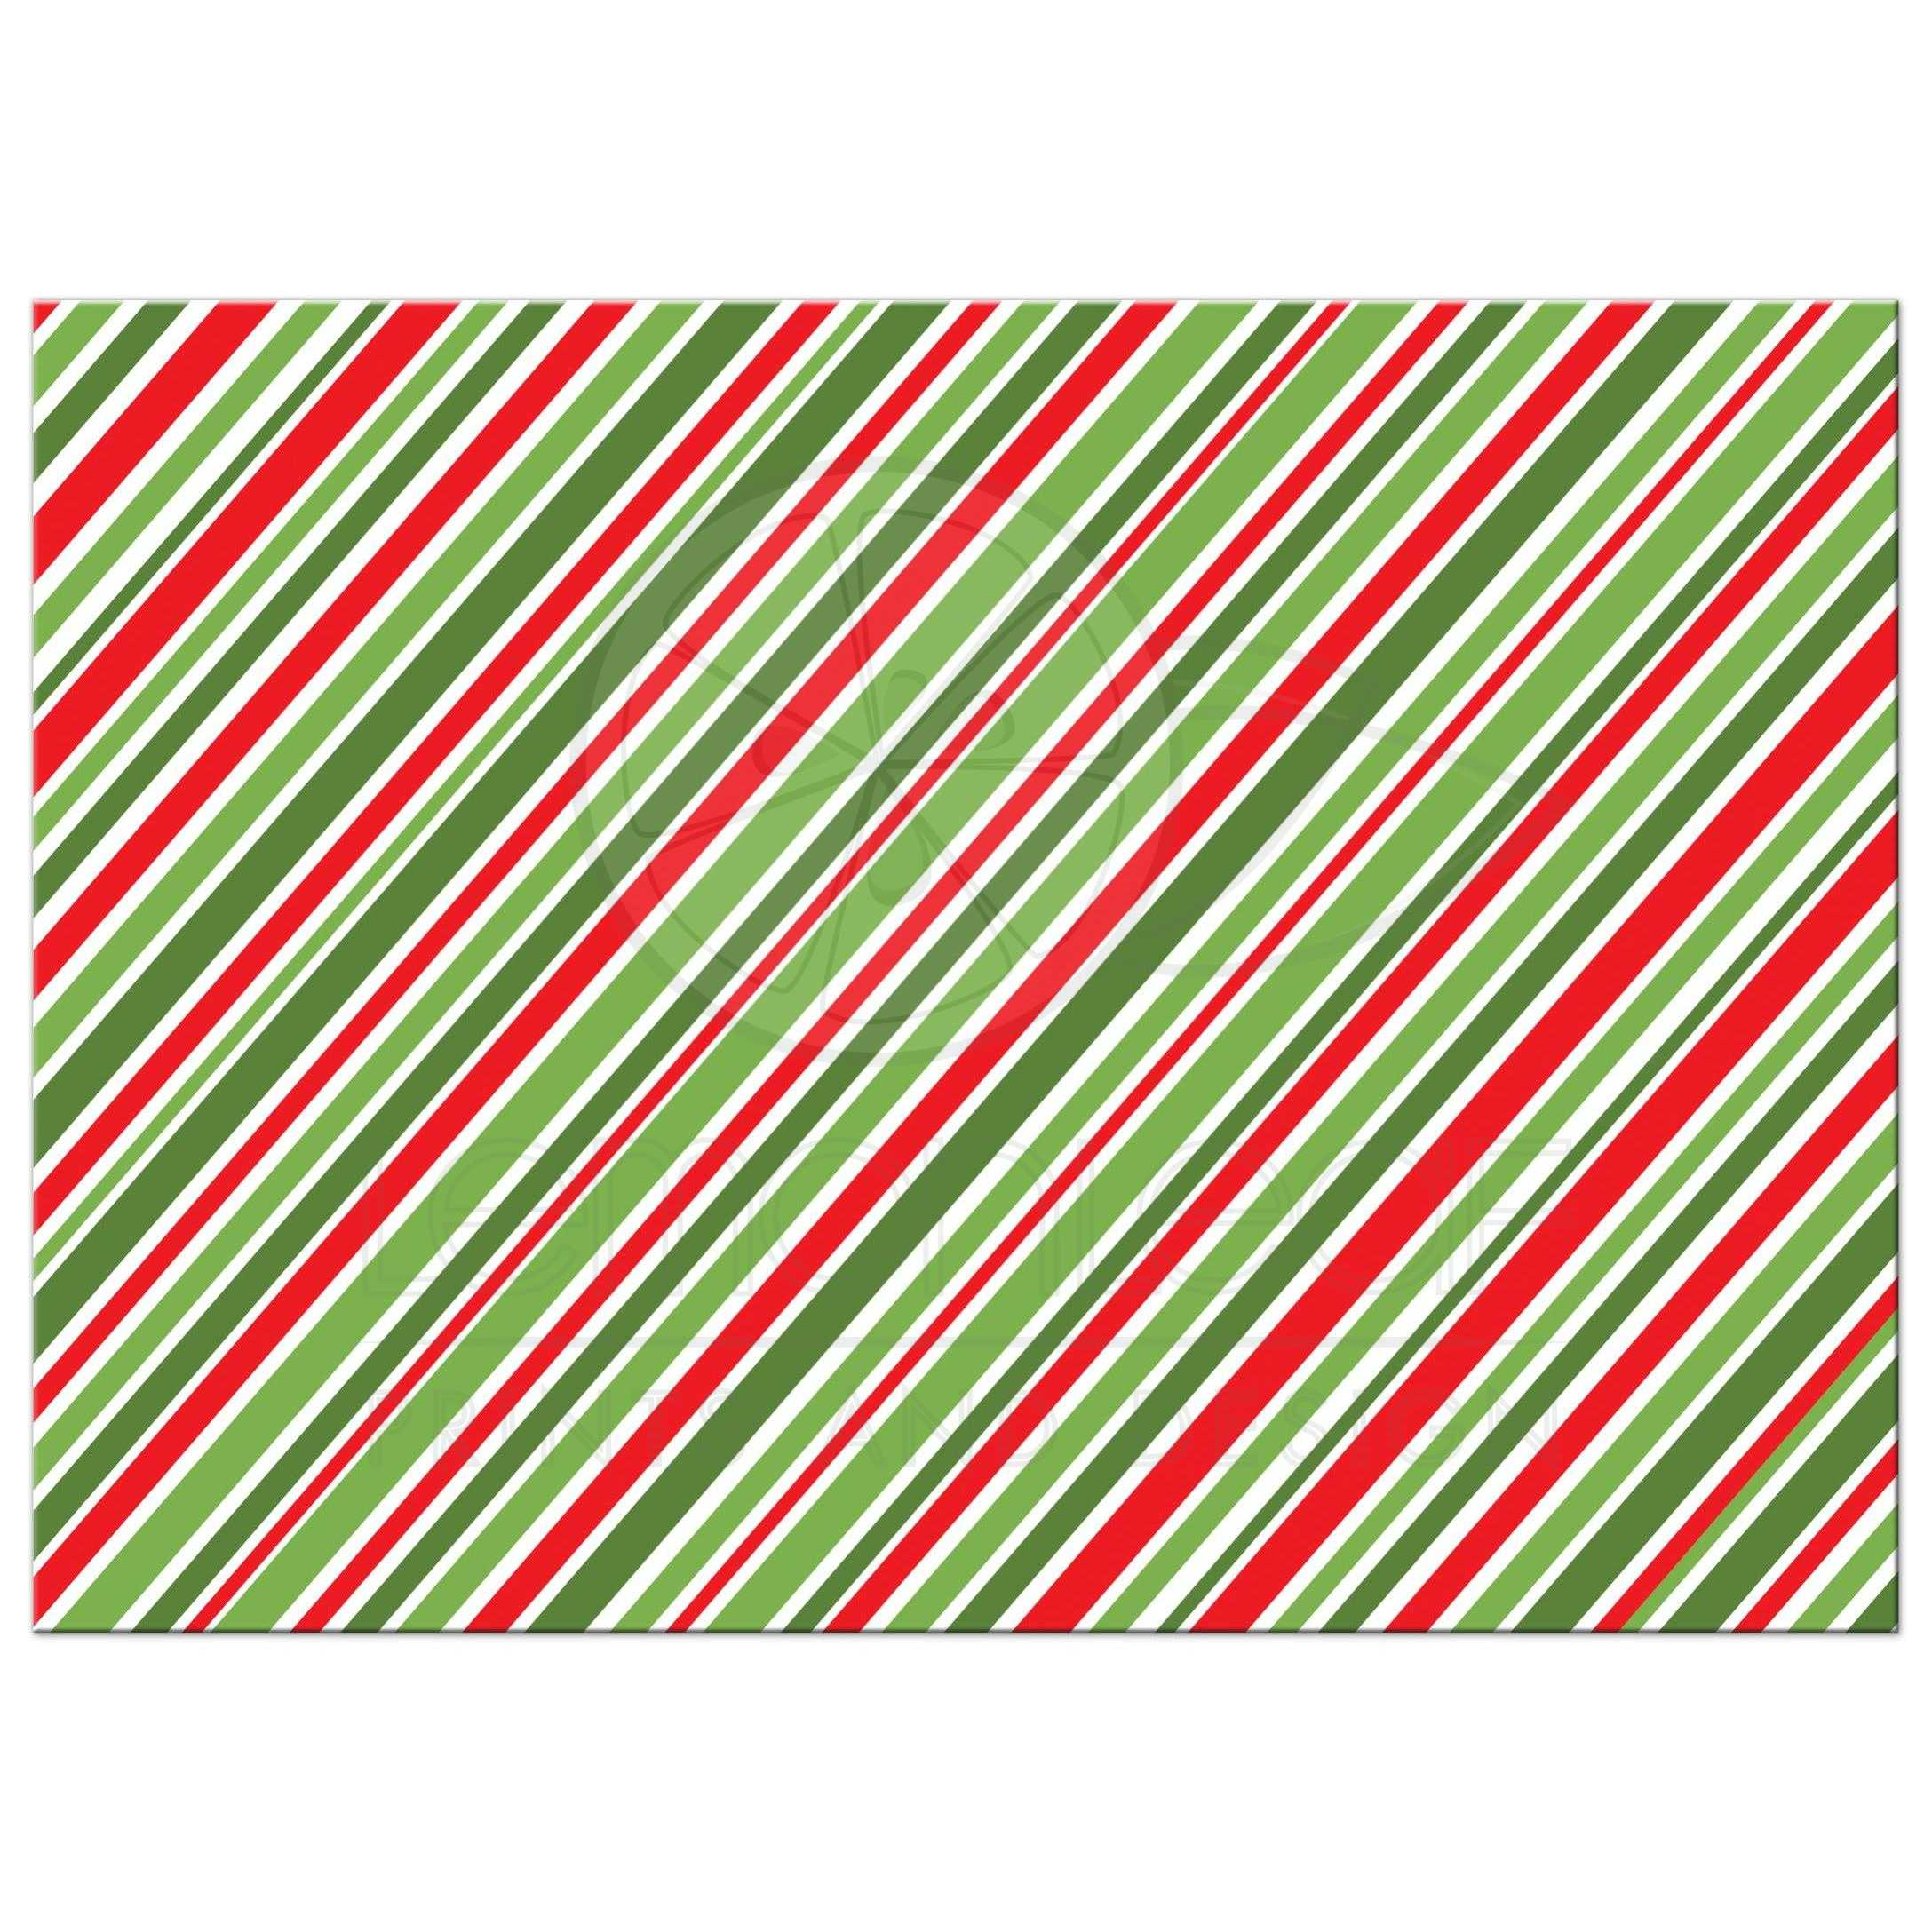 Happy Holiday Card With Red And Green Striped Border